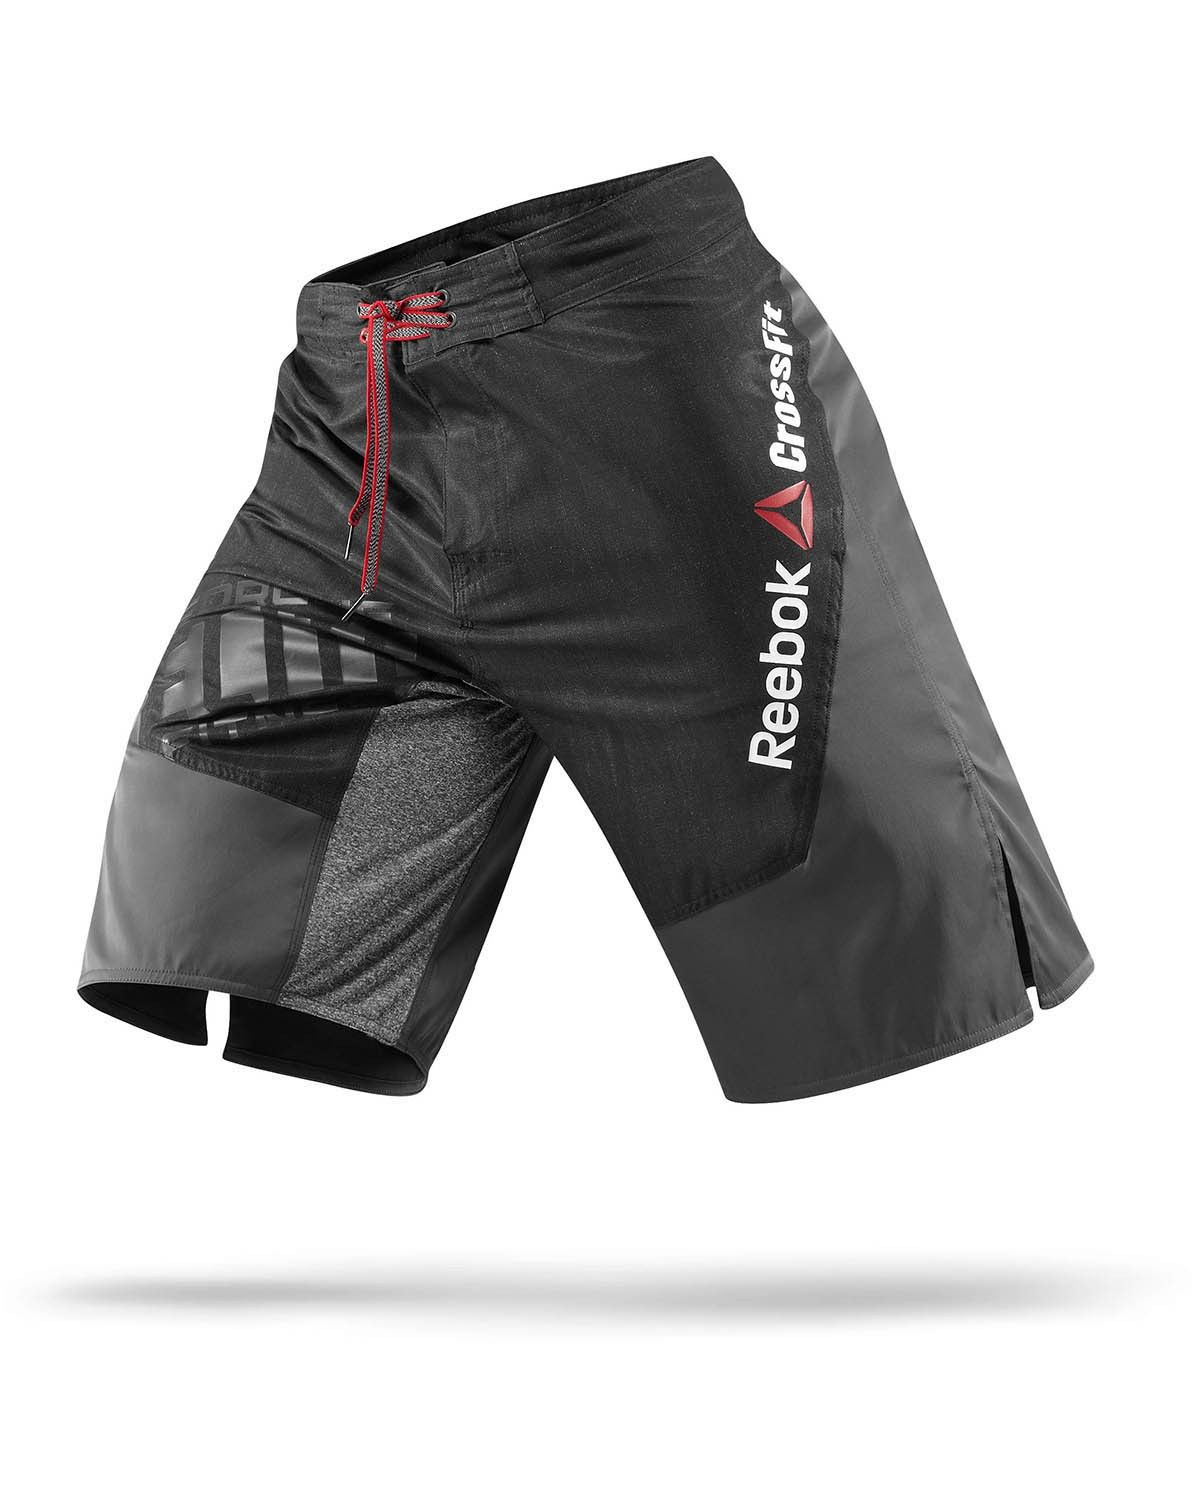 CrossFit HQ Store- Canvas Forging Elite Fitness Boardshort - Pants   Shorts  - Men Buy Authentic CrossFit T-Shirts 0f1c0147366